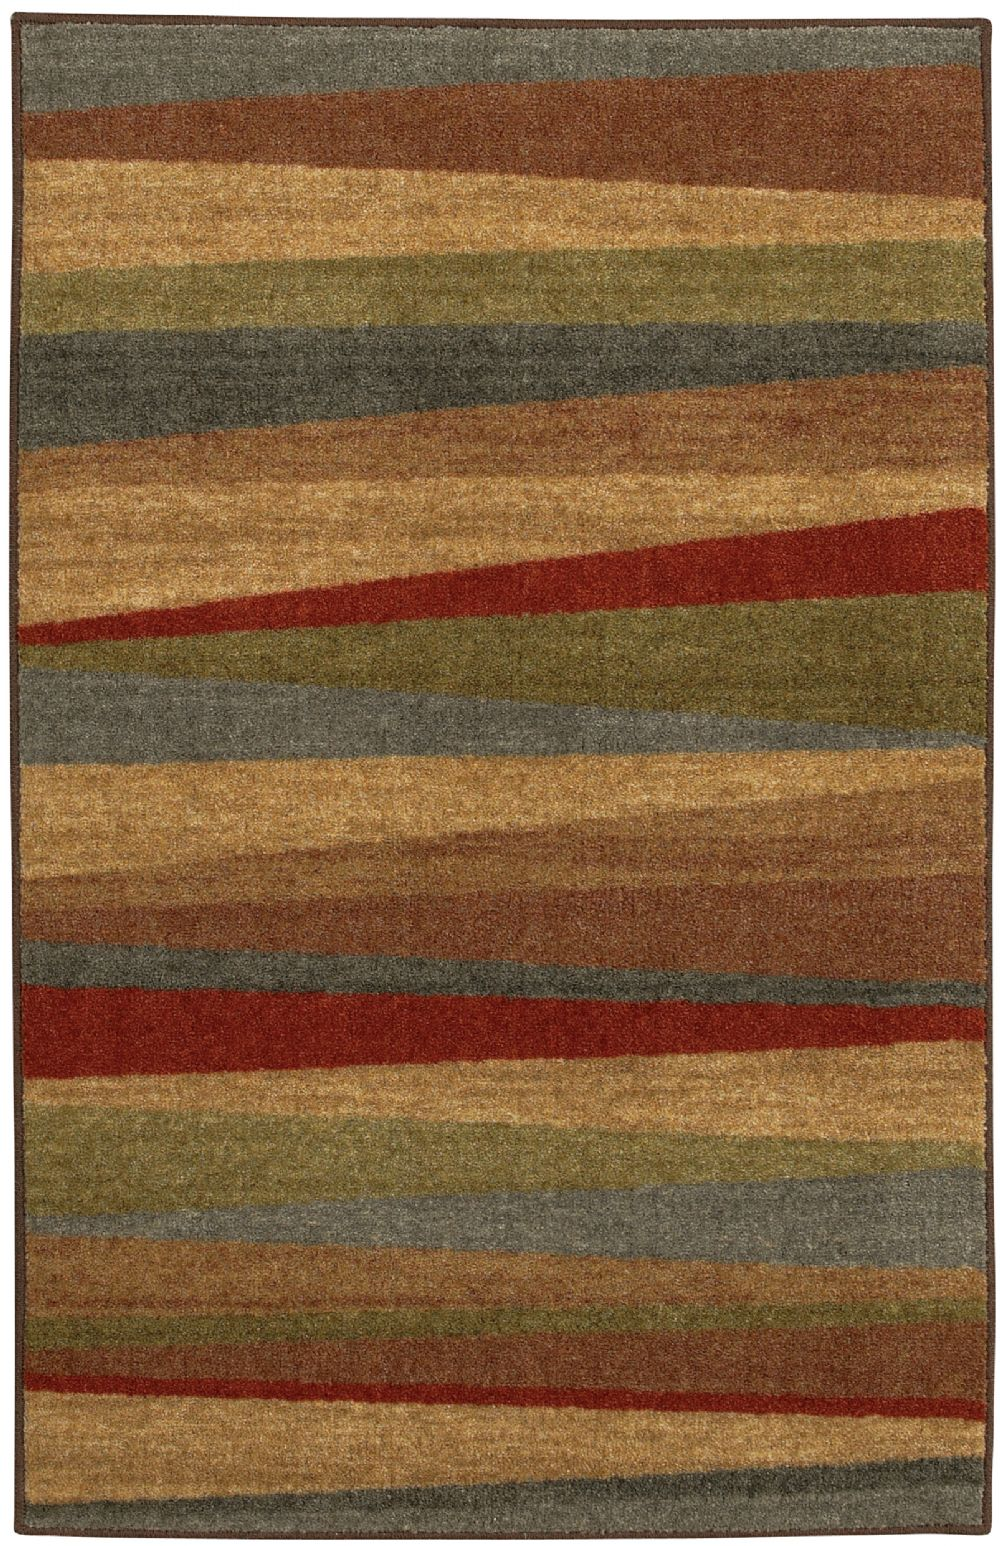 Mohawk Mayan Sunset Contemporary Area Rug Collection